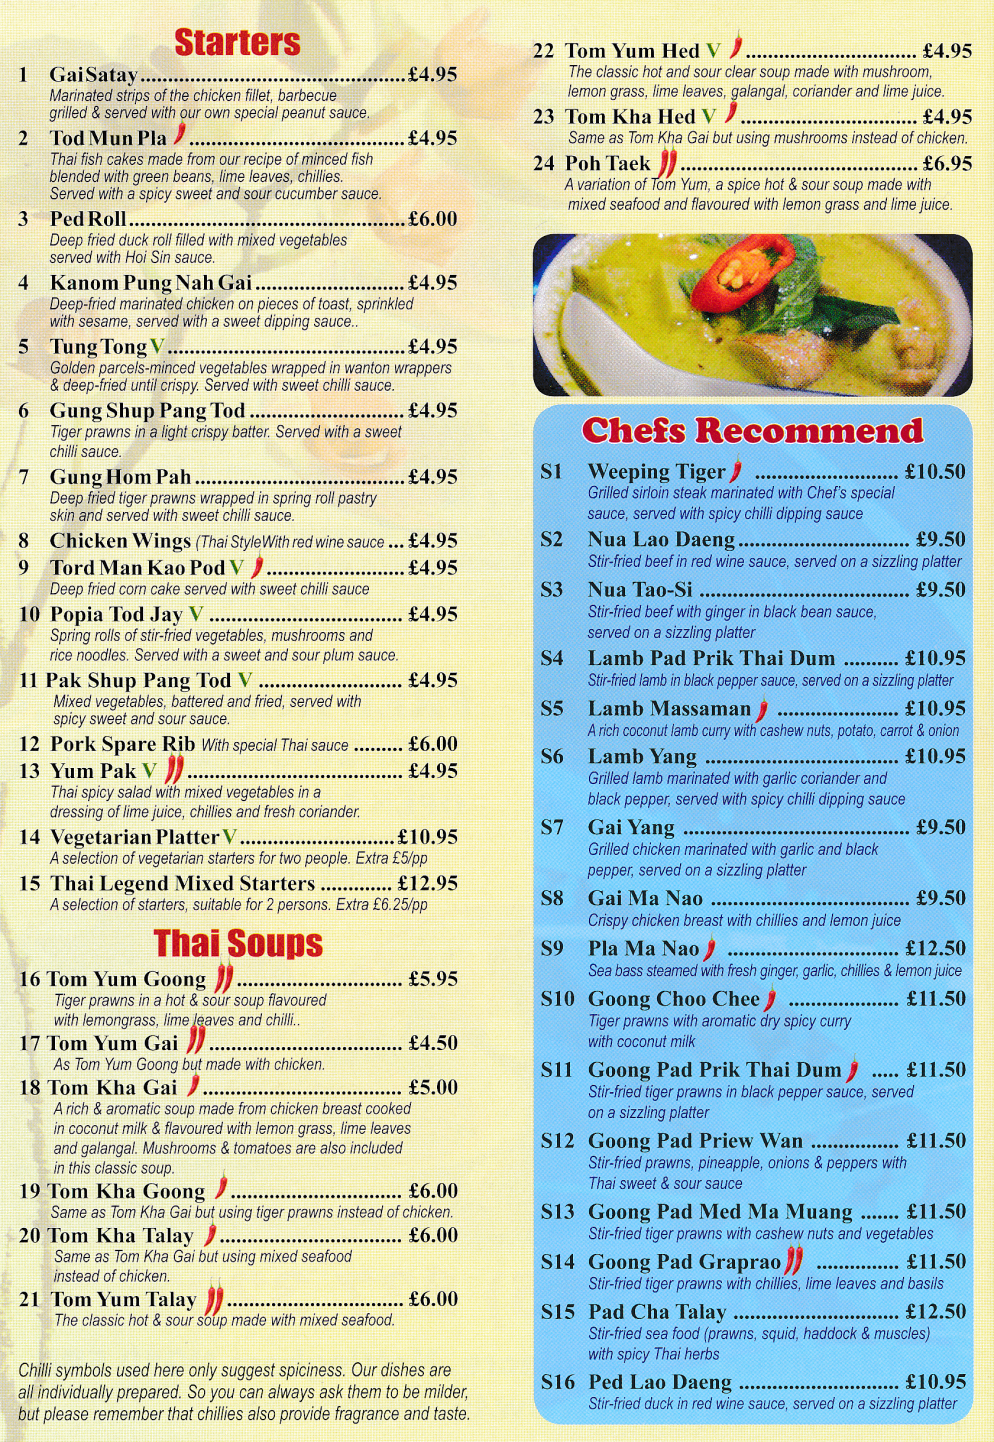 Takeaway menu for Thai Legend (Thai curries, salads, seafood dishes, set menus, Chef's recommended dishes..)